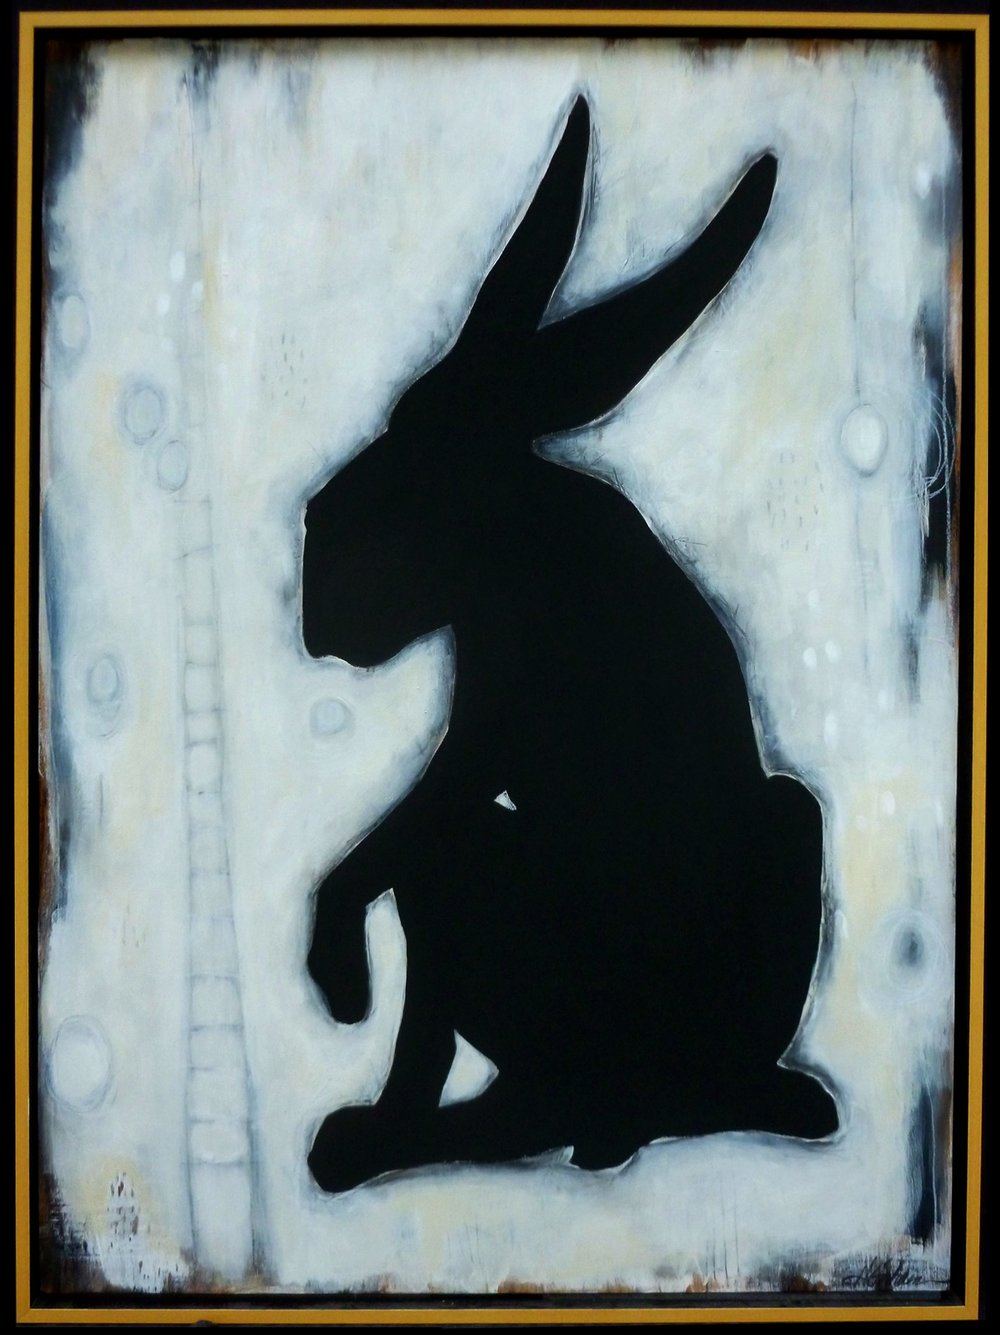 CONEJO DE LA NOCHE I (RABBIT OF THE NIGHT I)